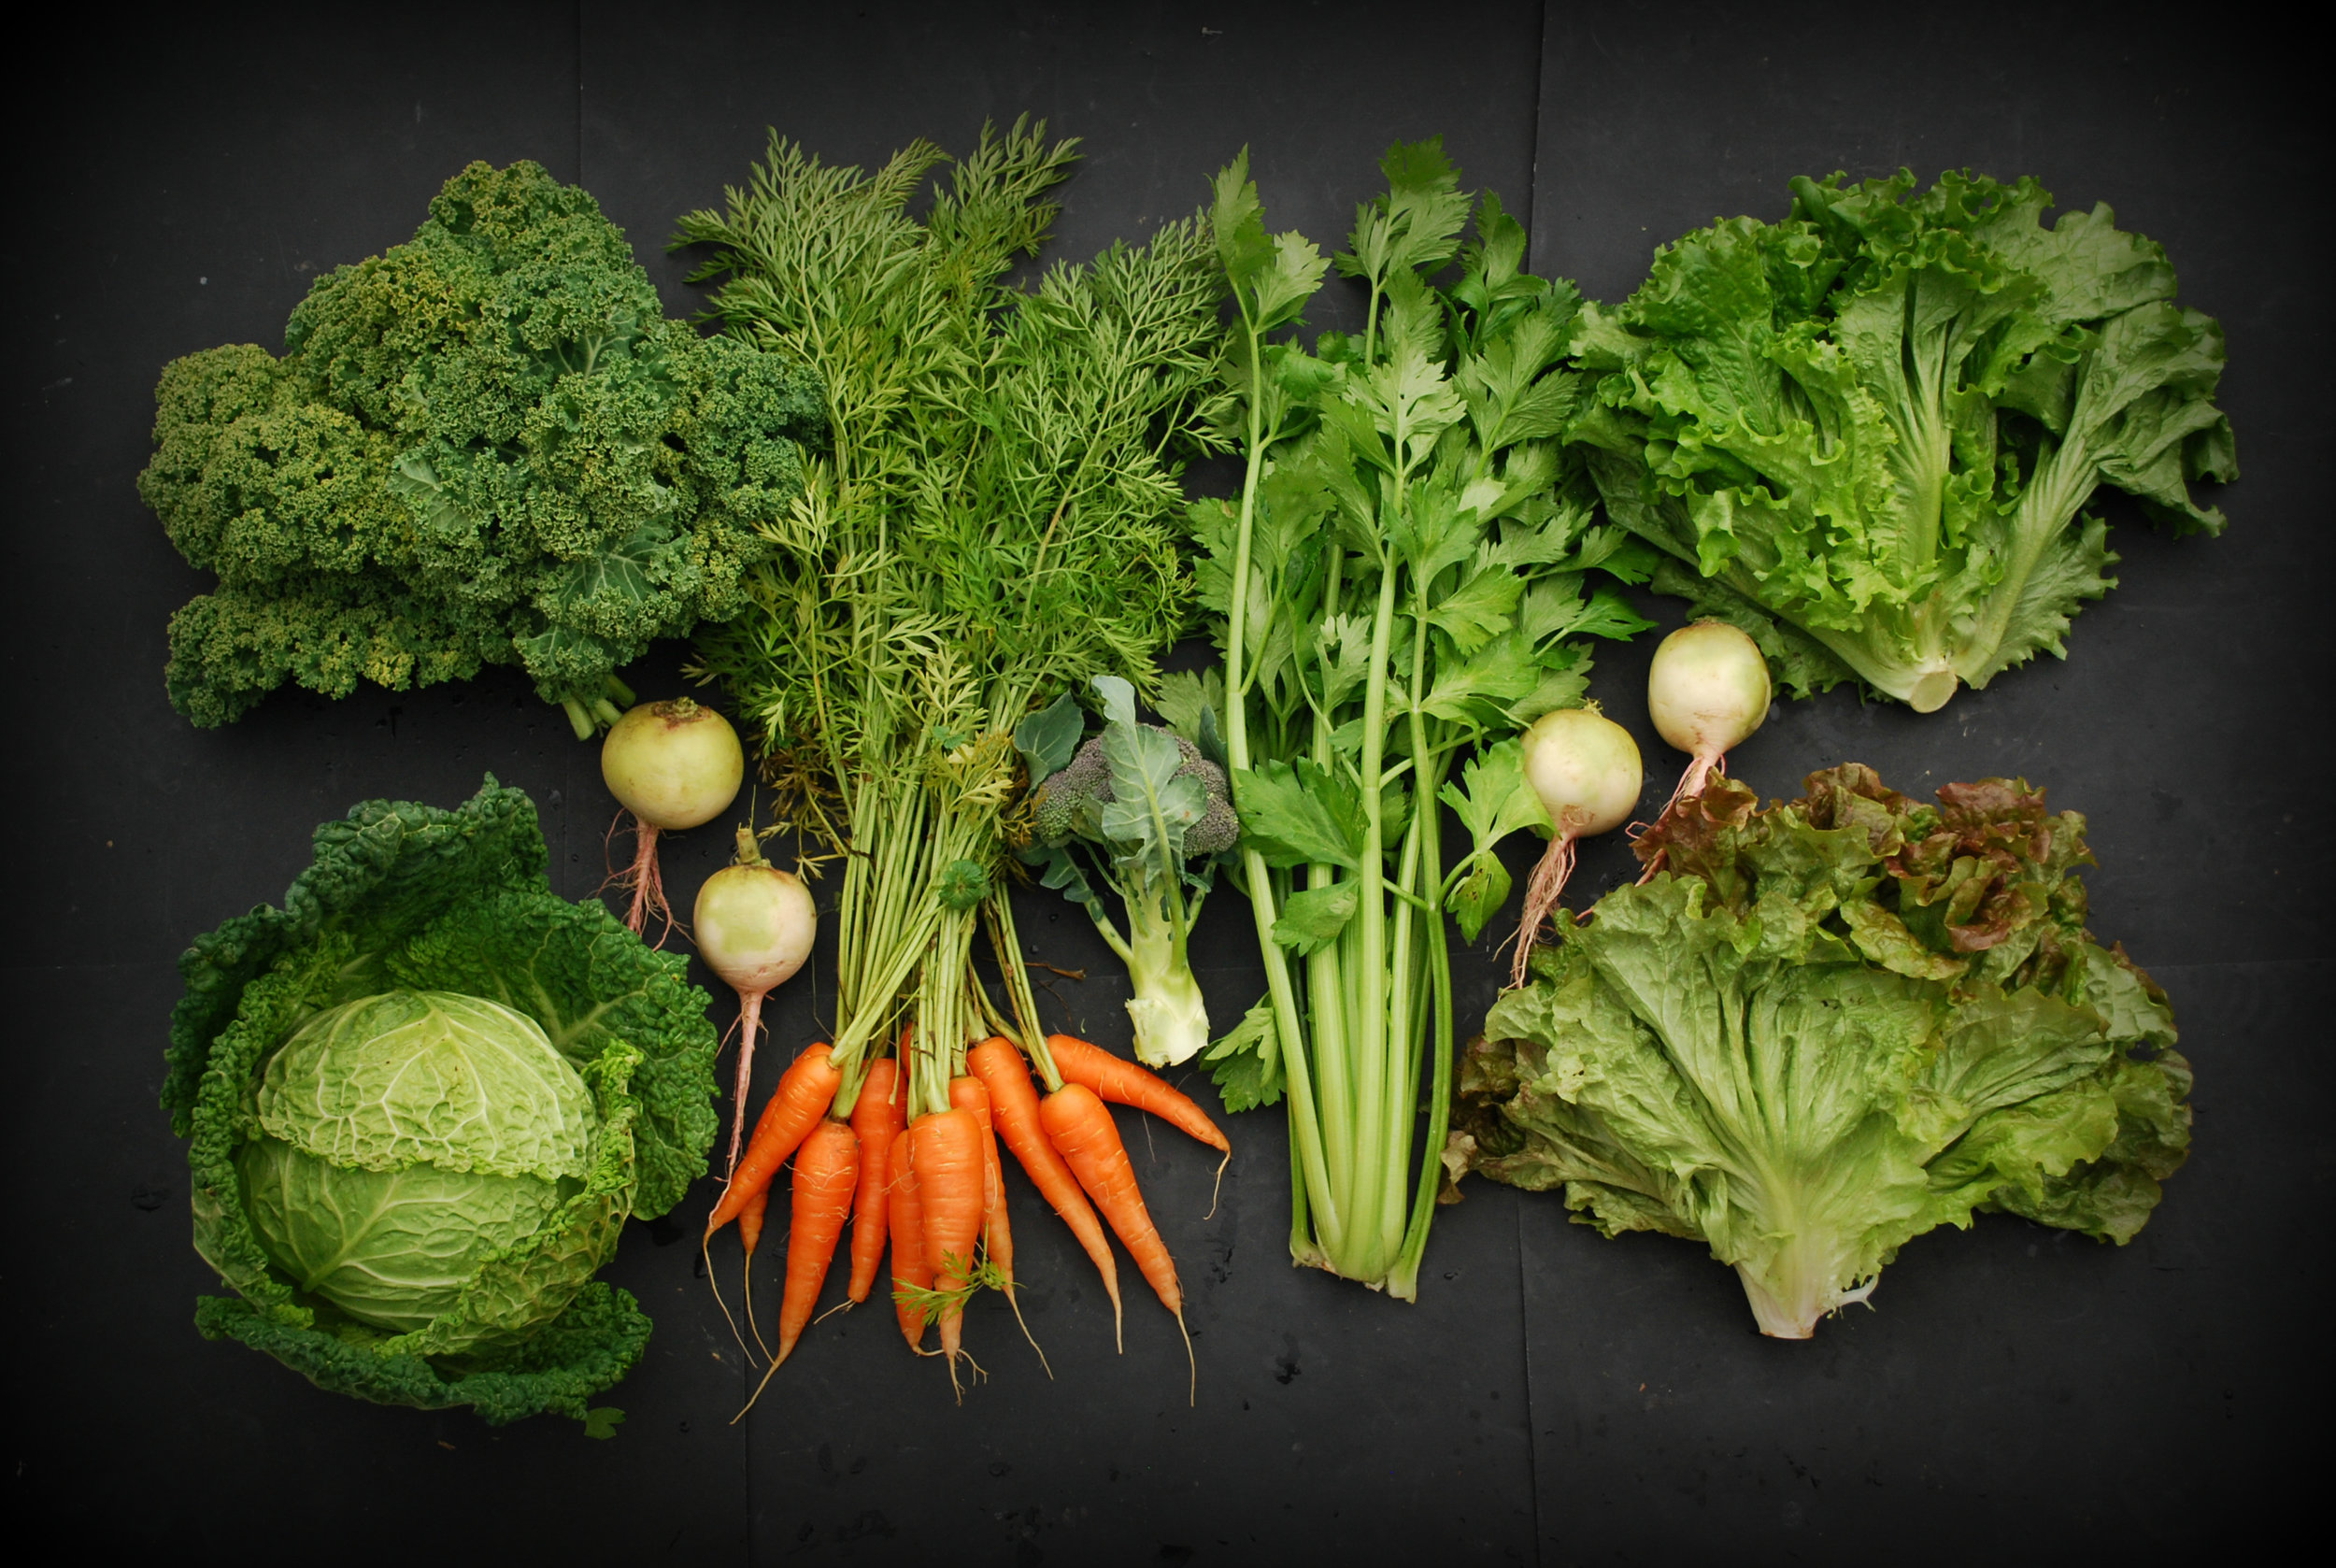 Your Week 11 CSA: Curly kale, Savoy cabbage, Watermelon radishes, carrots, broccoli, celery, green leaf lettuce, red leaf lettuce.